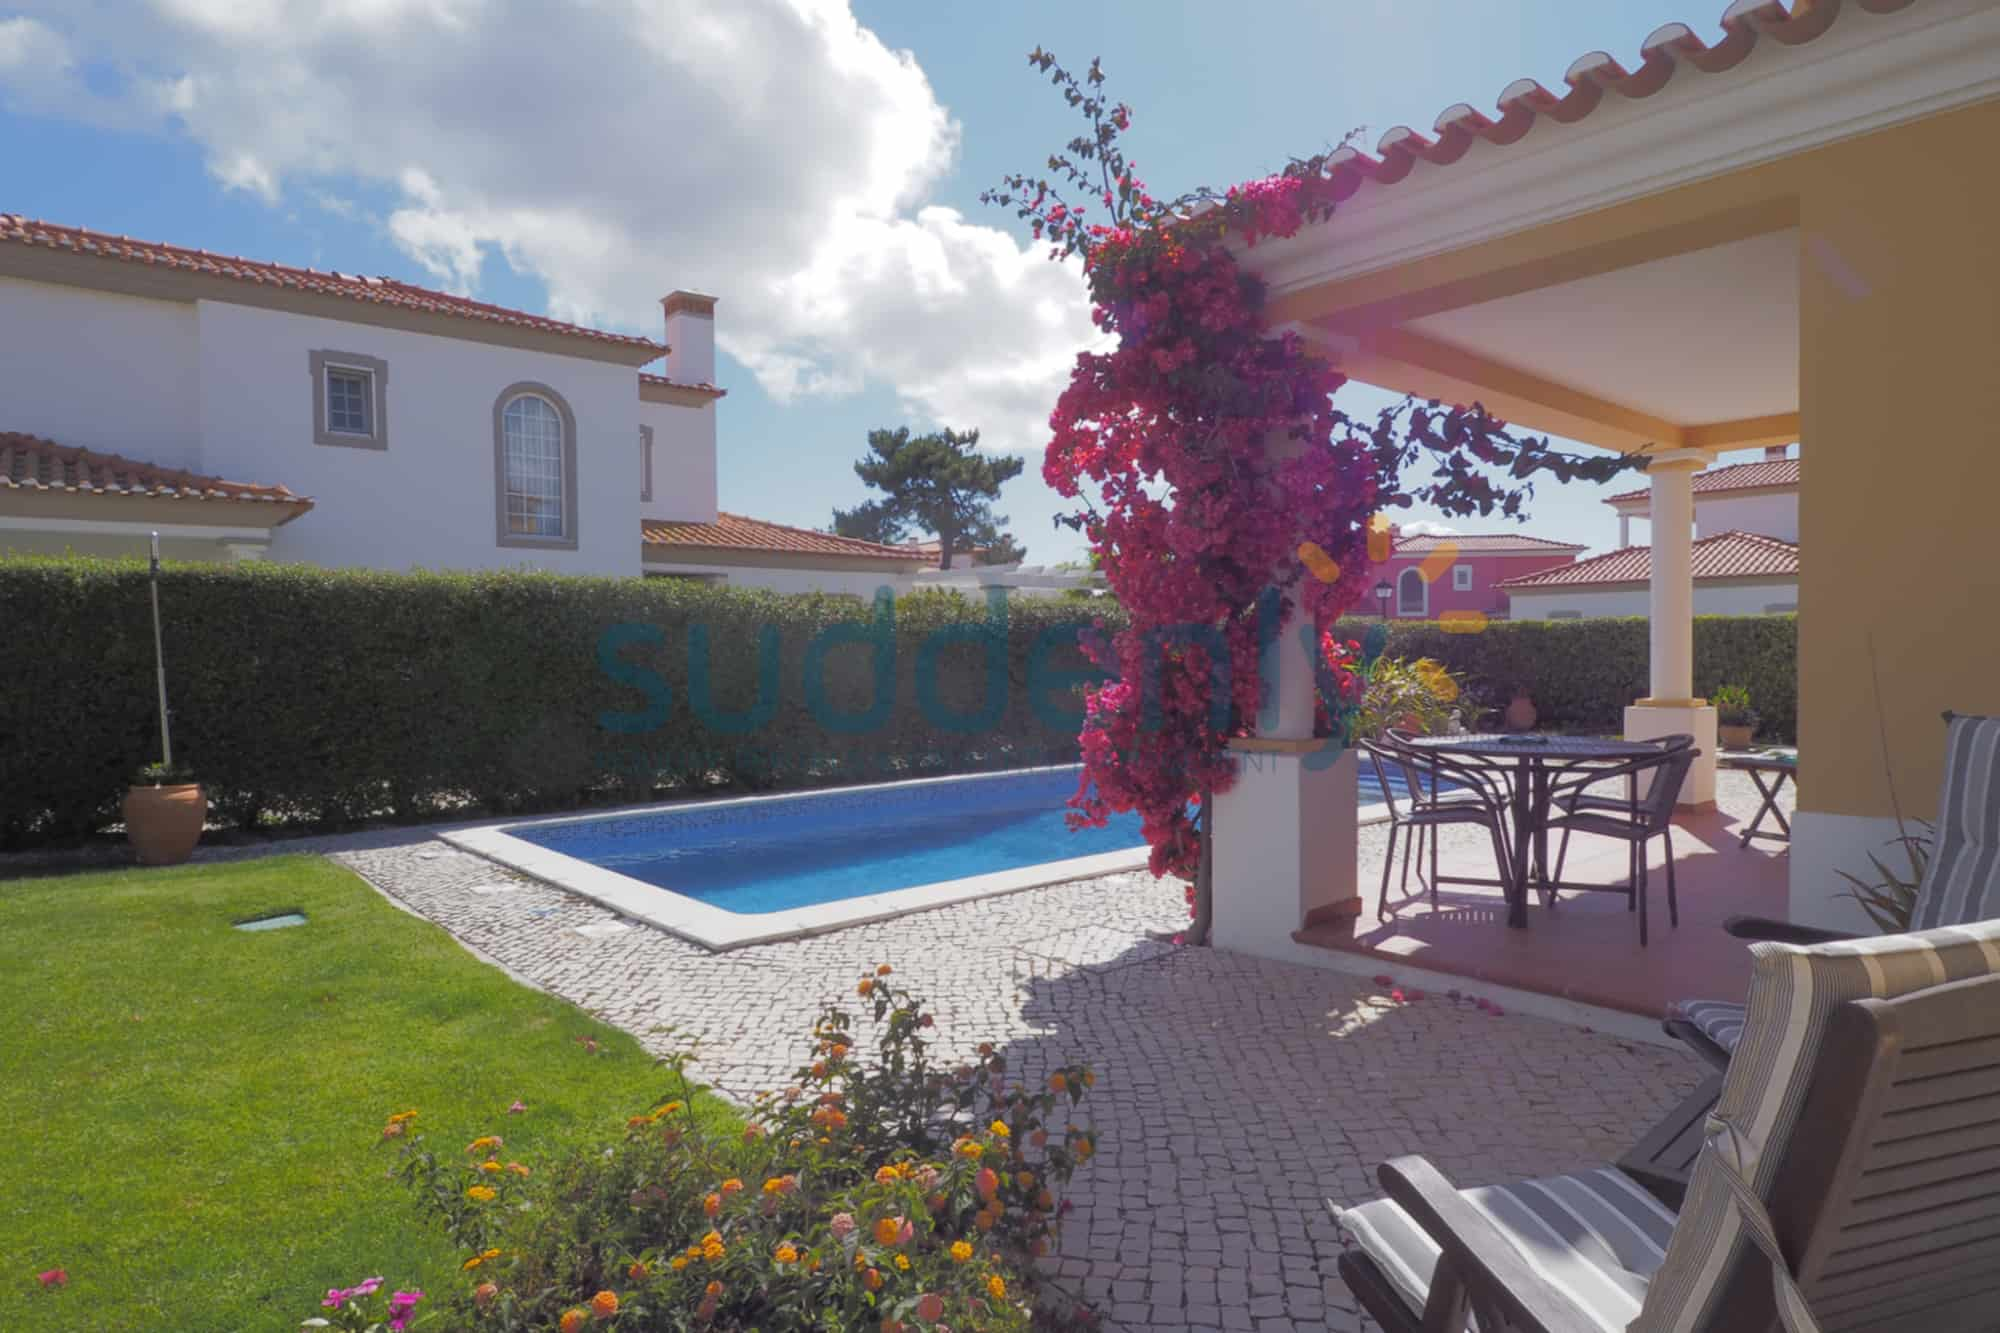 Holiday Rentals in Praia D'El Rey 322